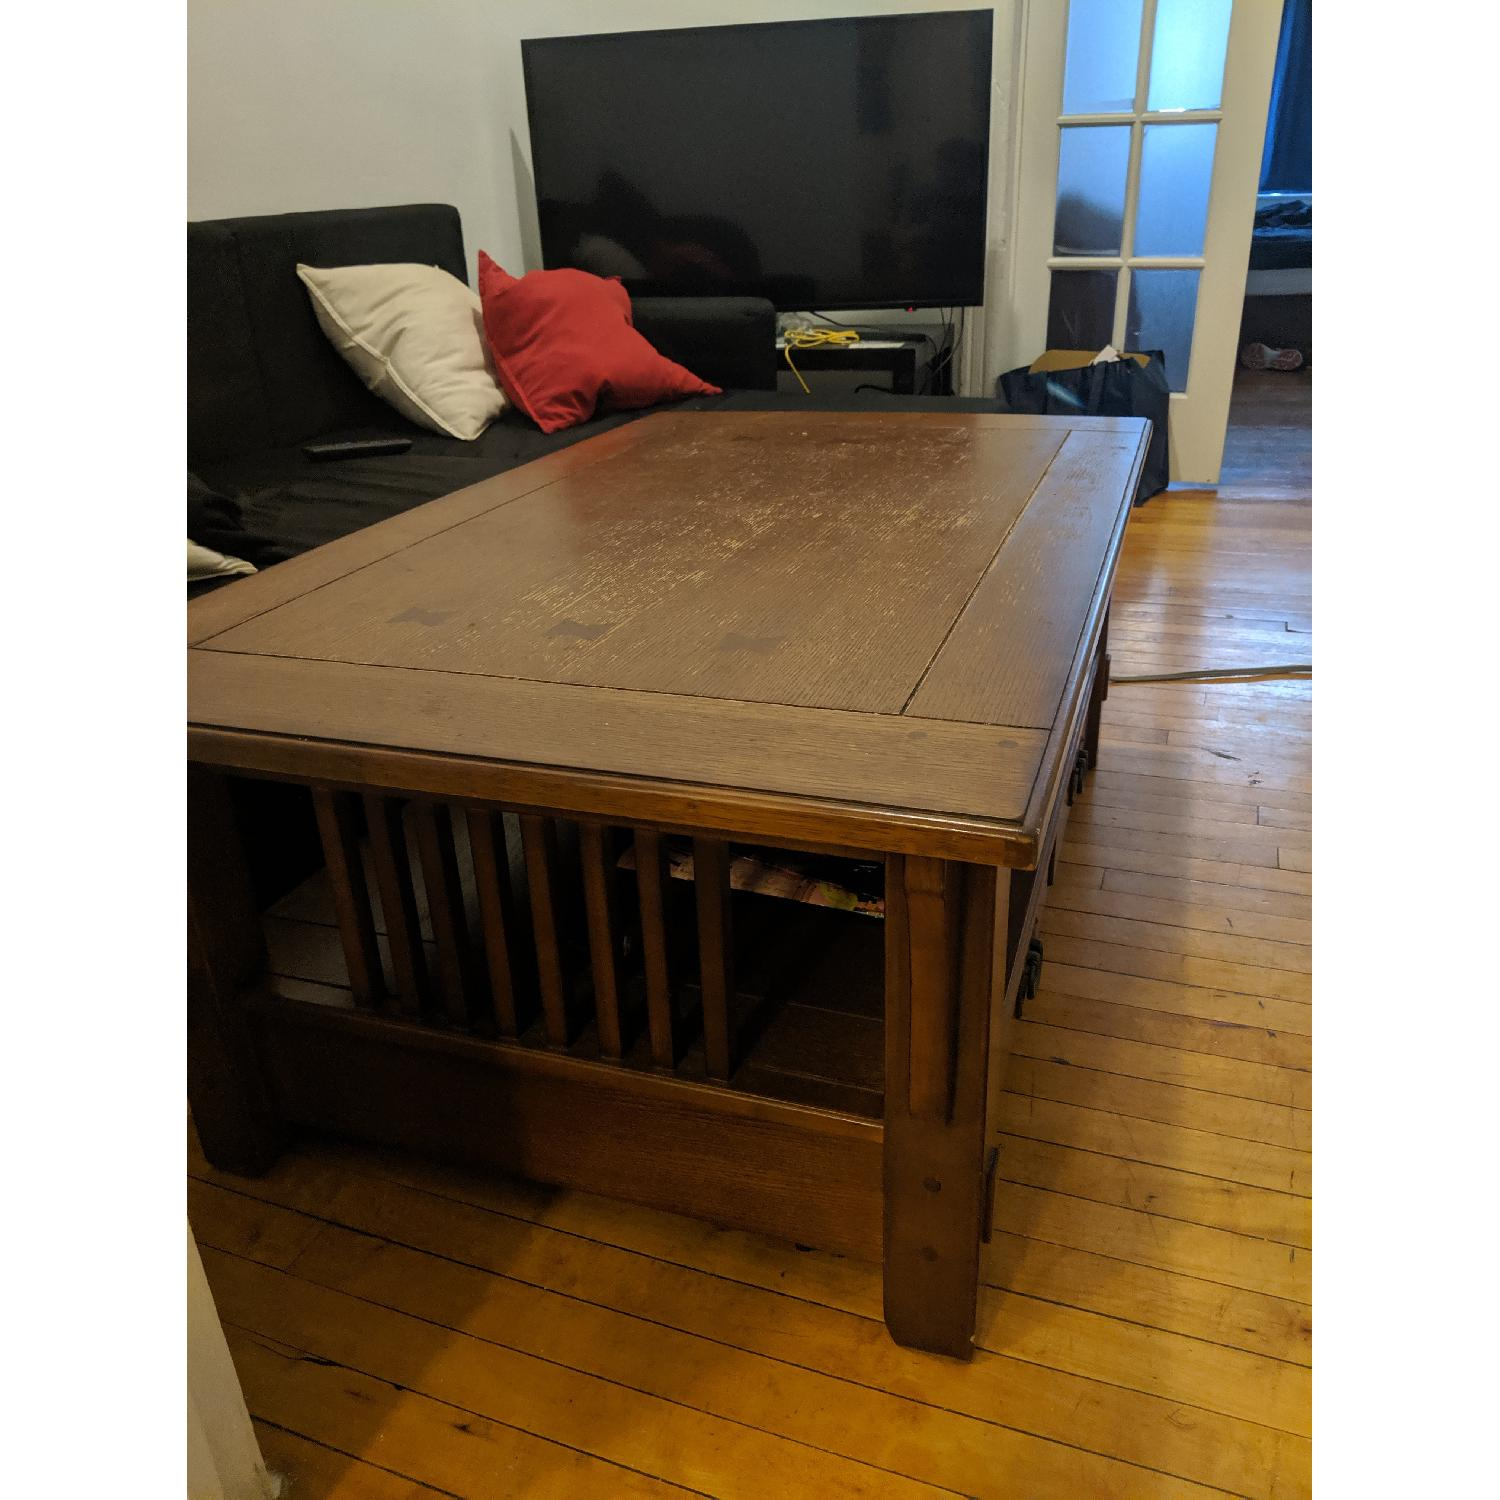 Vintage Wooden Lift-Top Coffee Table - image-1